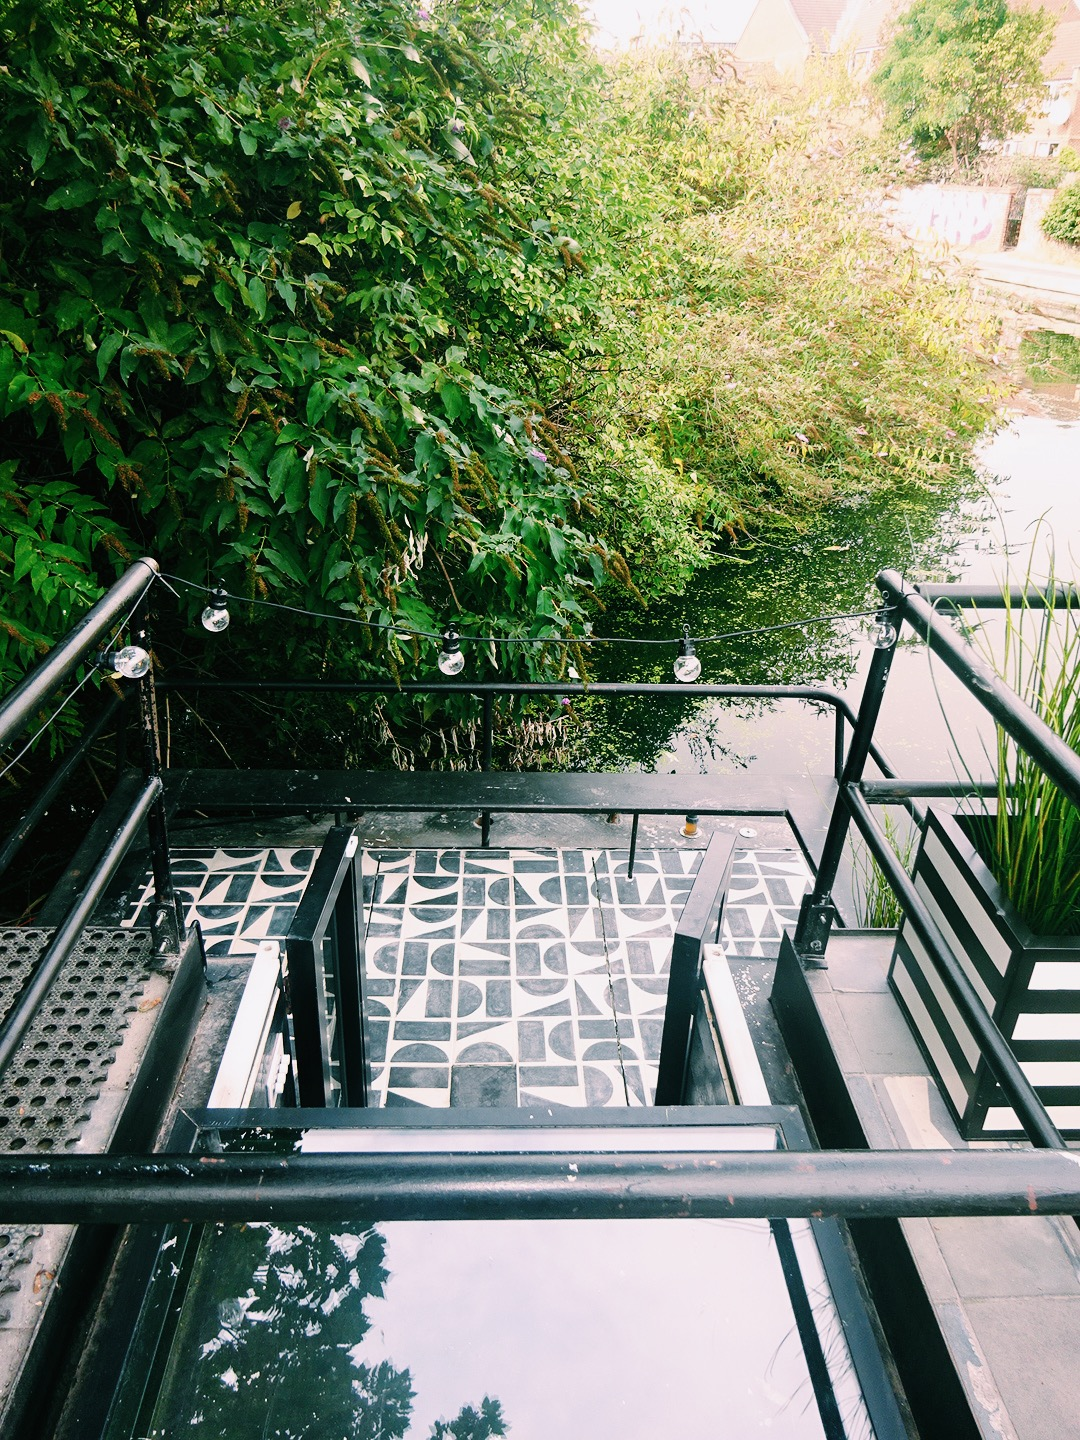 The barge patio covered in Split Shift tiles